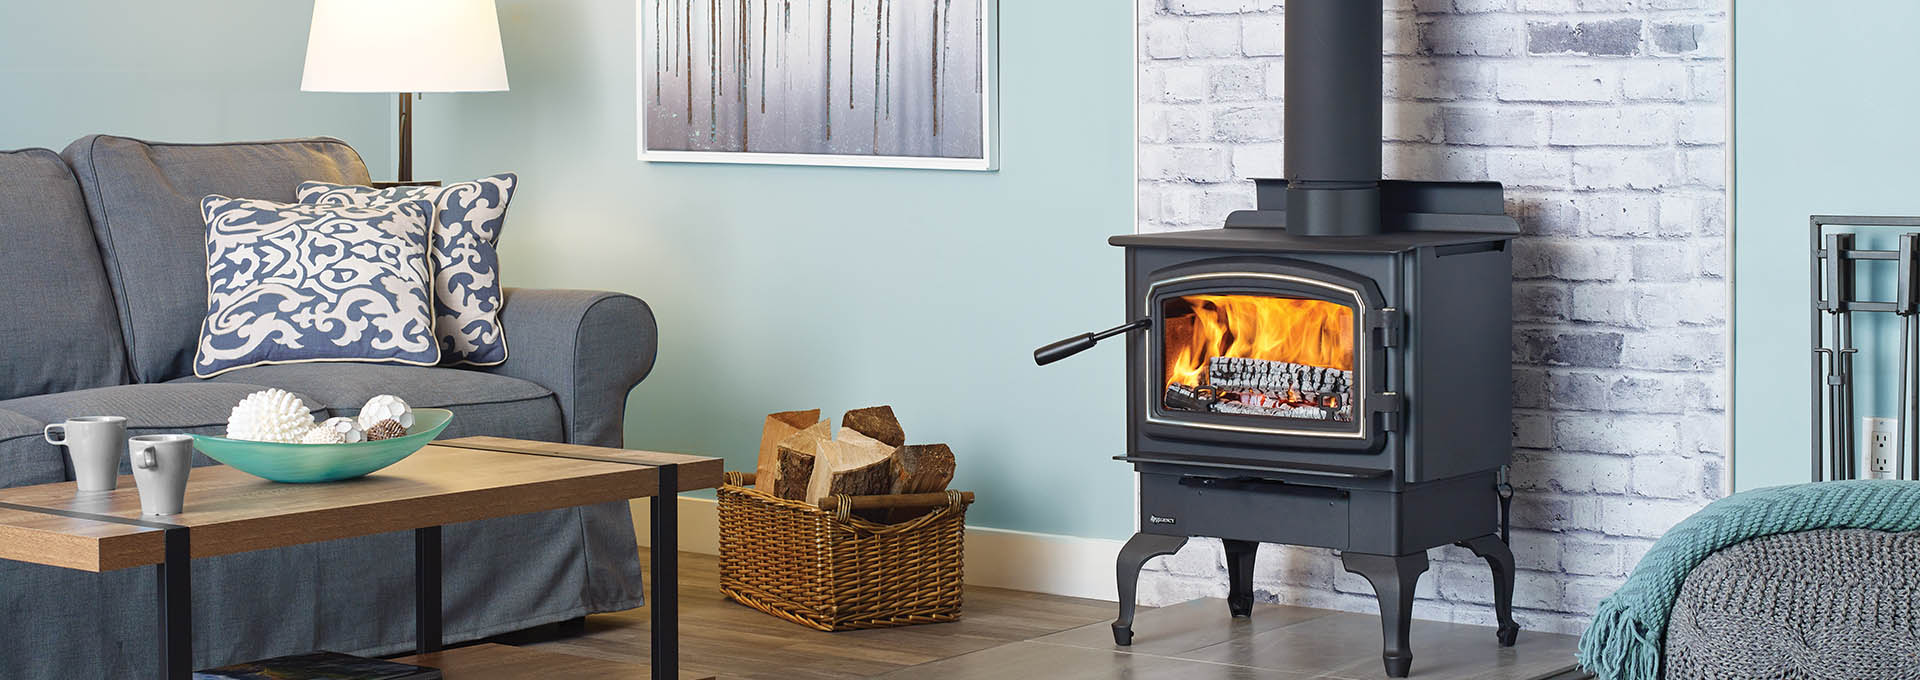 F1150 Non Catalytic Wood Stove Freestanding Wood Stoves By Regency